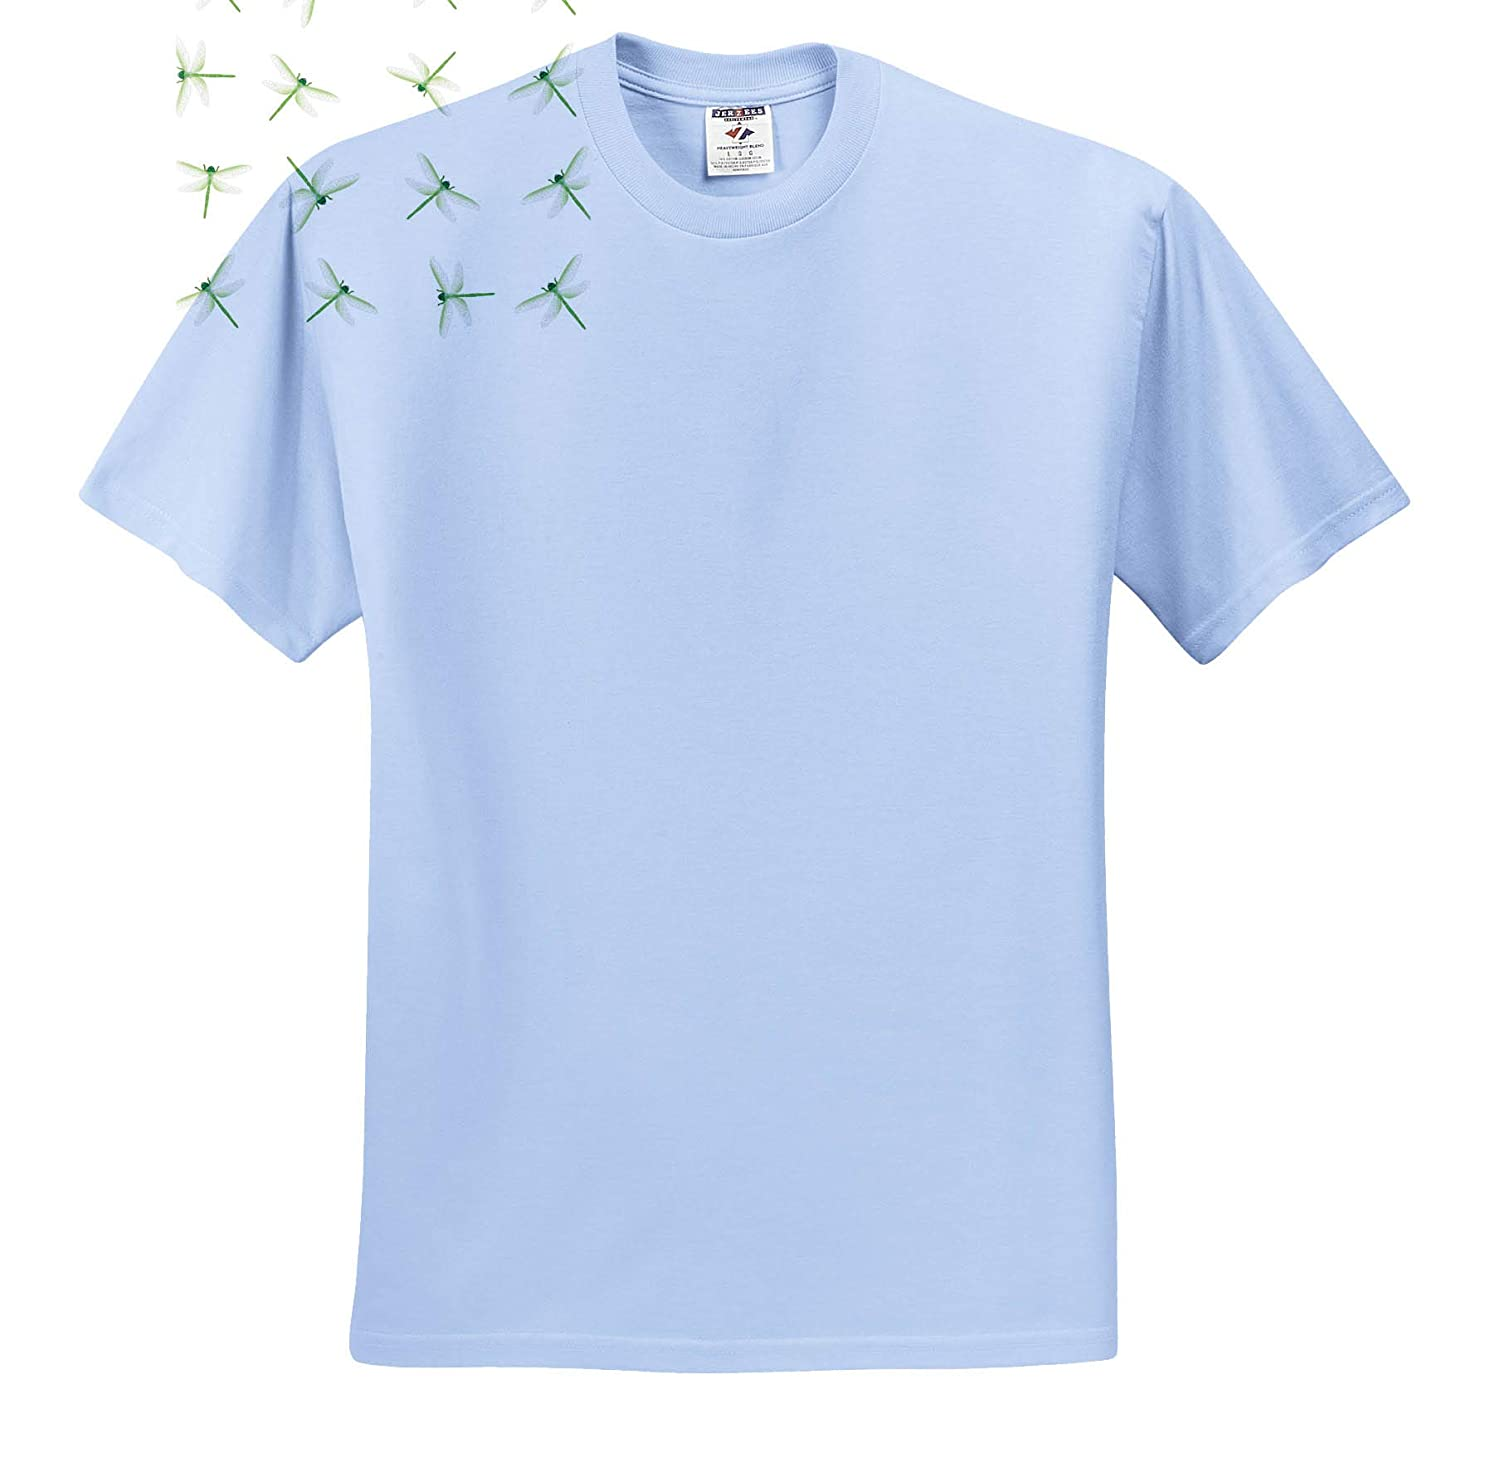 Image of Small Green Dragonflies Repeat Pattern T-Shirts 3dRose Lens Art by Florene Toss Patterns